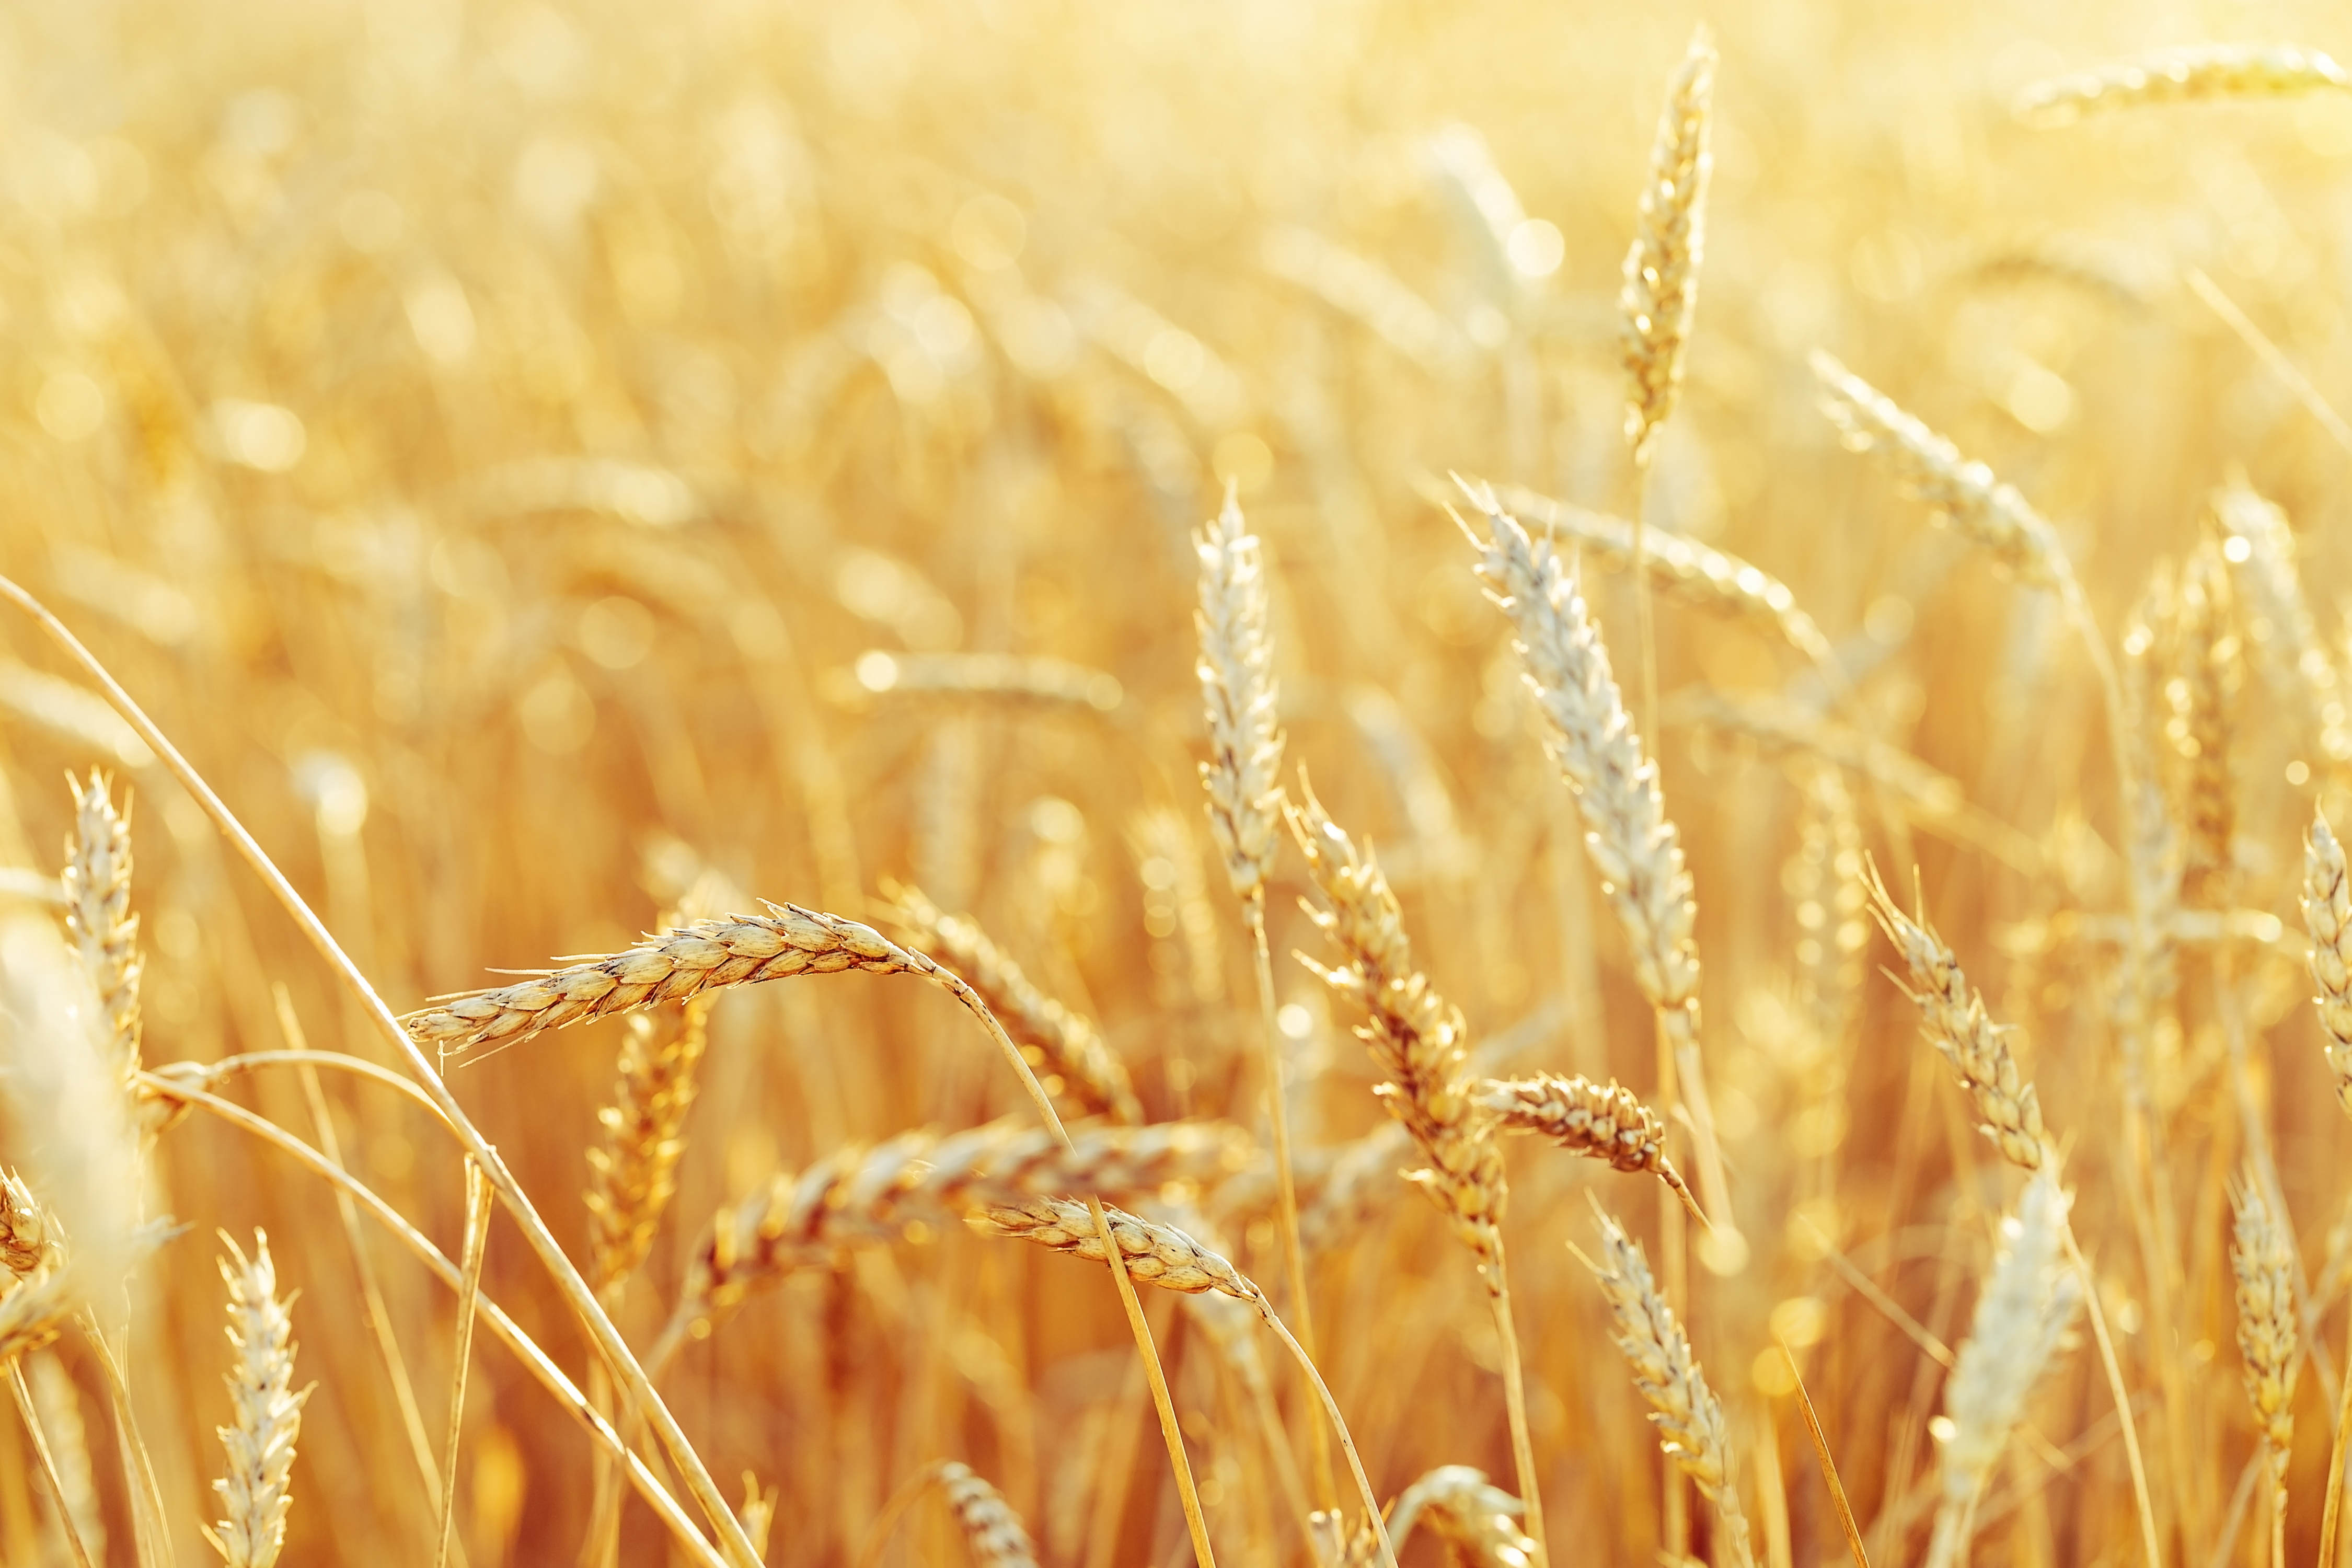 Rural,Scenery.,Background,Of,Ripening,Ears,Of,Wheat,Field,And